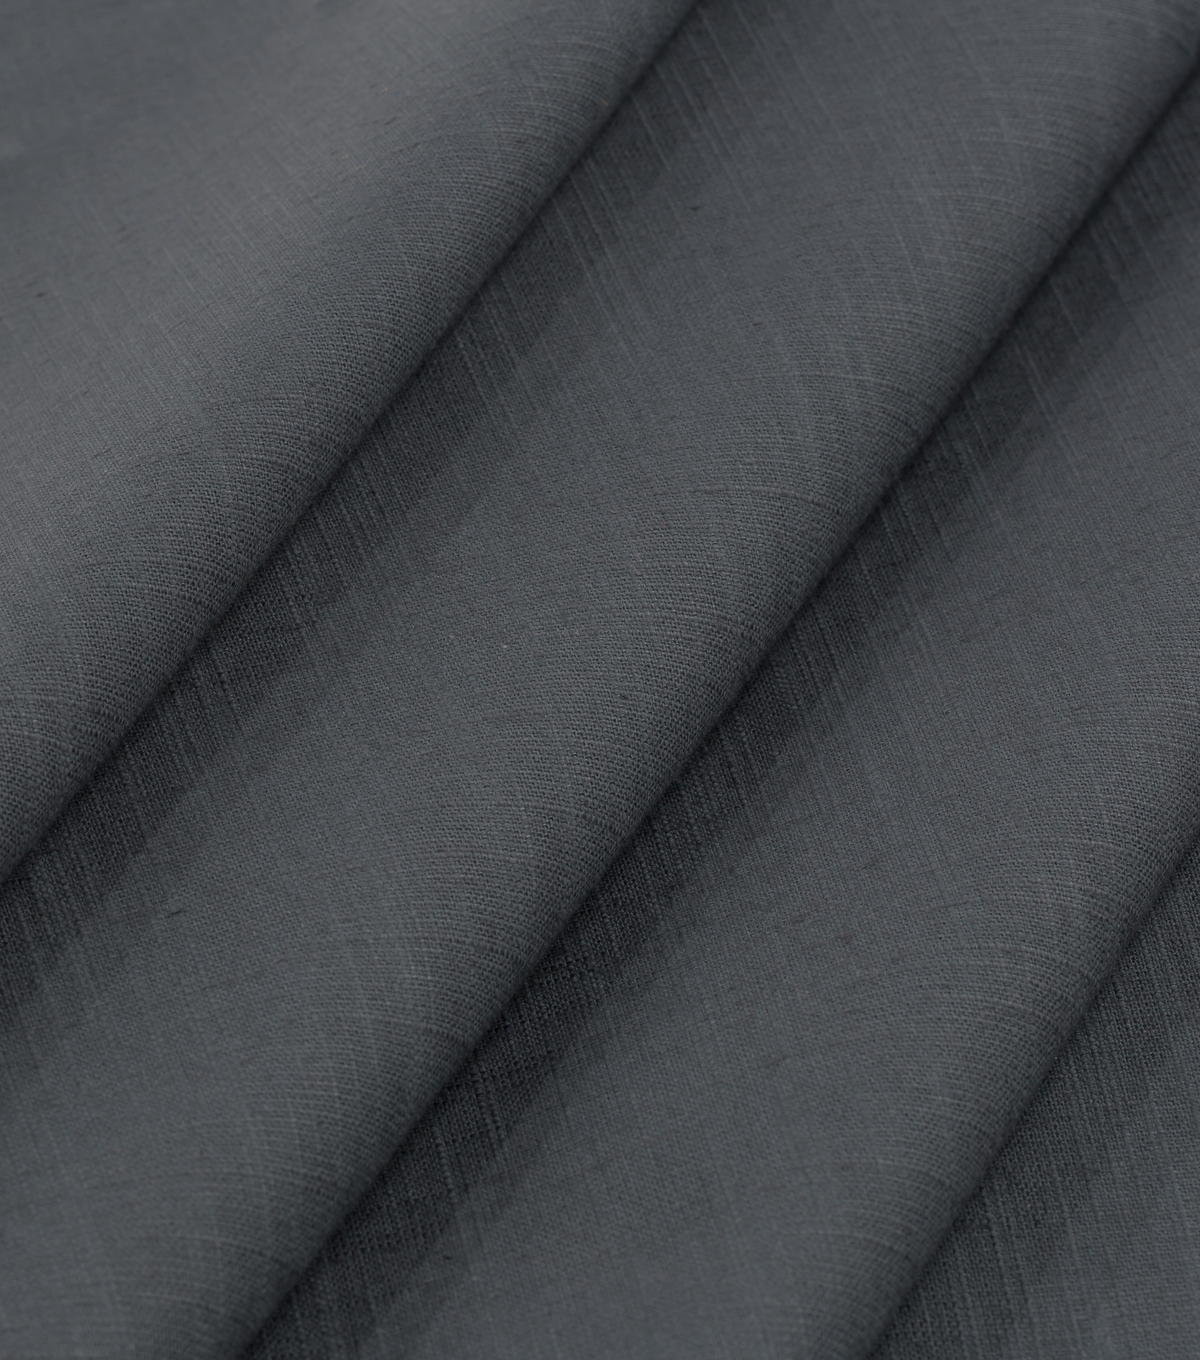 Robert Allen @ Home Solid Fabric 54\u0022-Slubbed Weave Charcoal